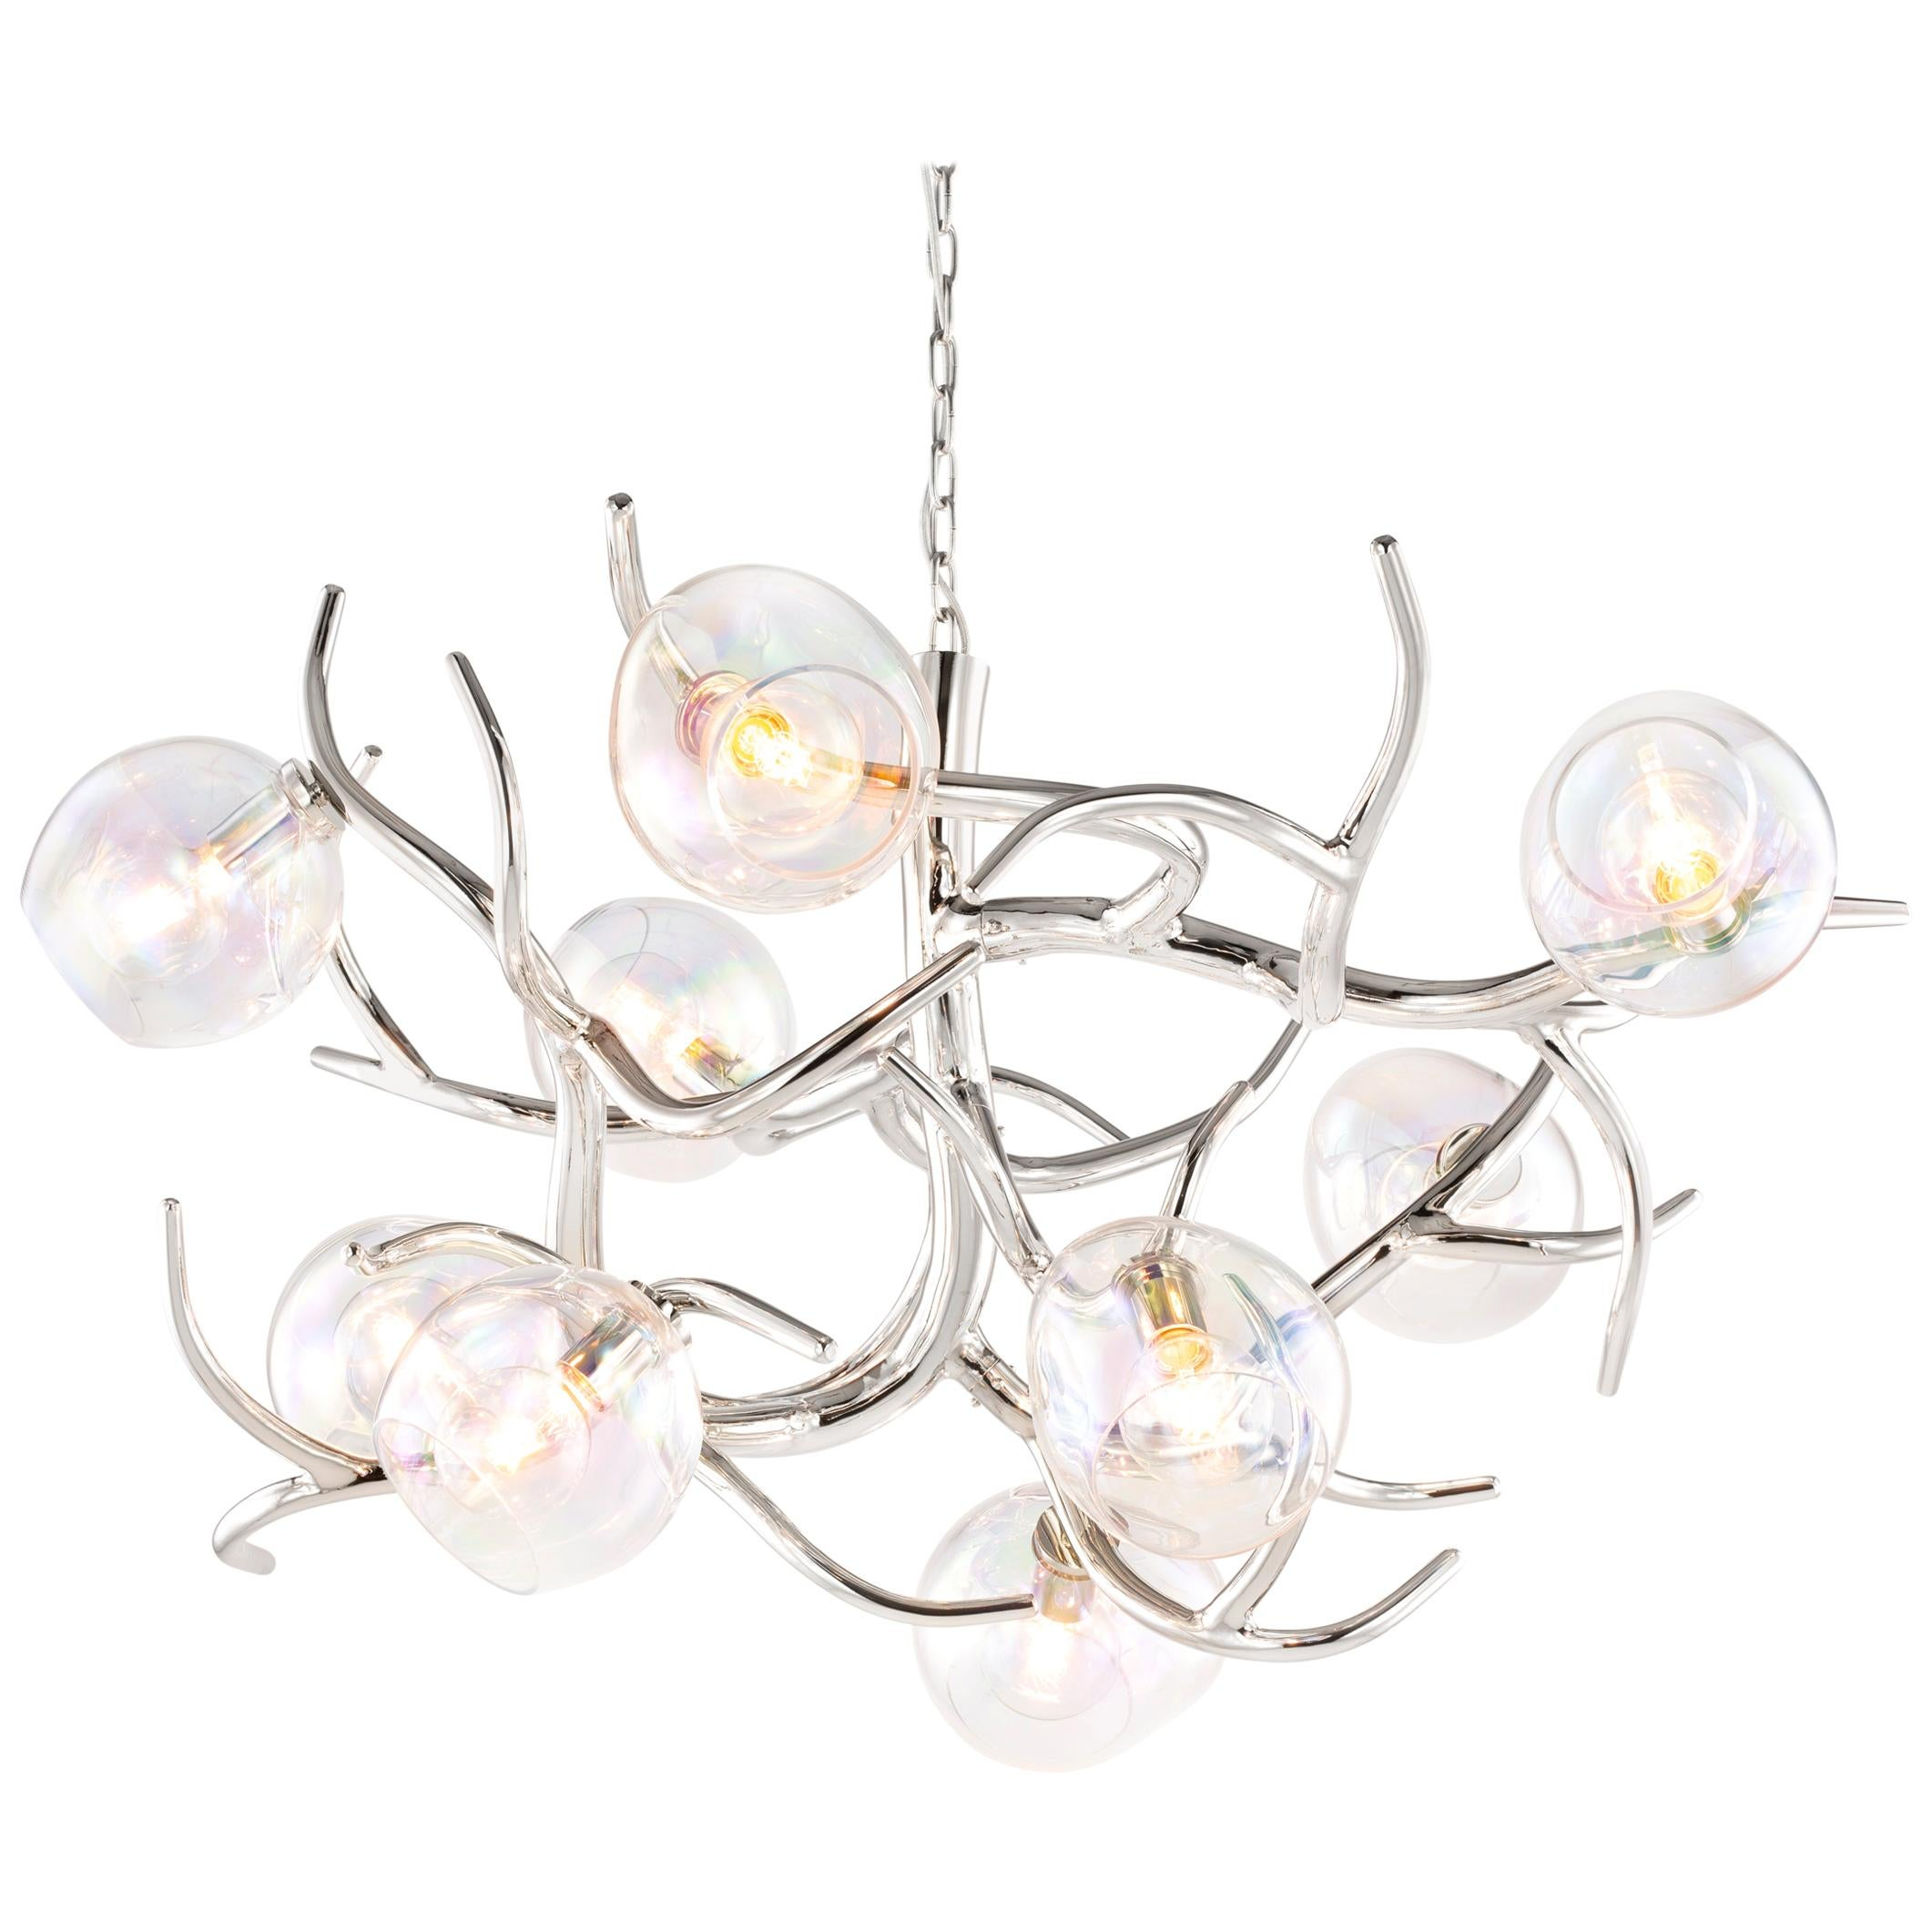 Modern Chandelier with Colored Glass in a Nickel Finish - Ersa Collection